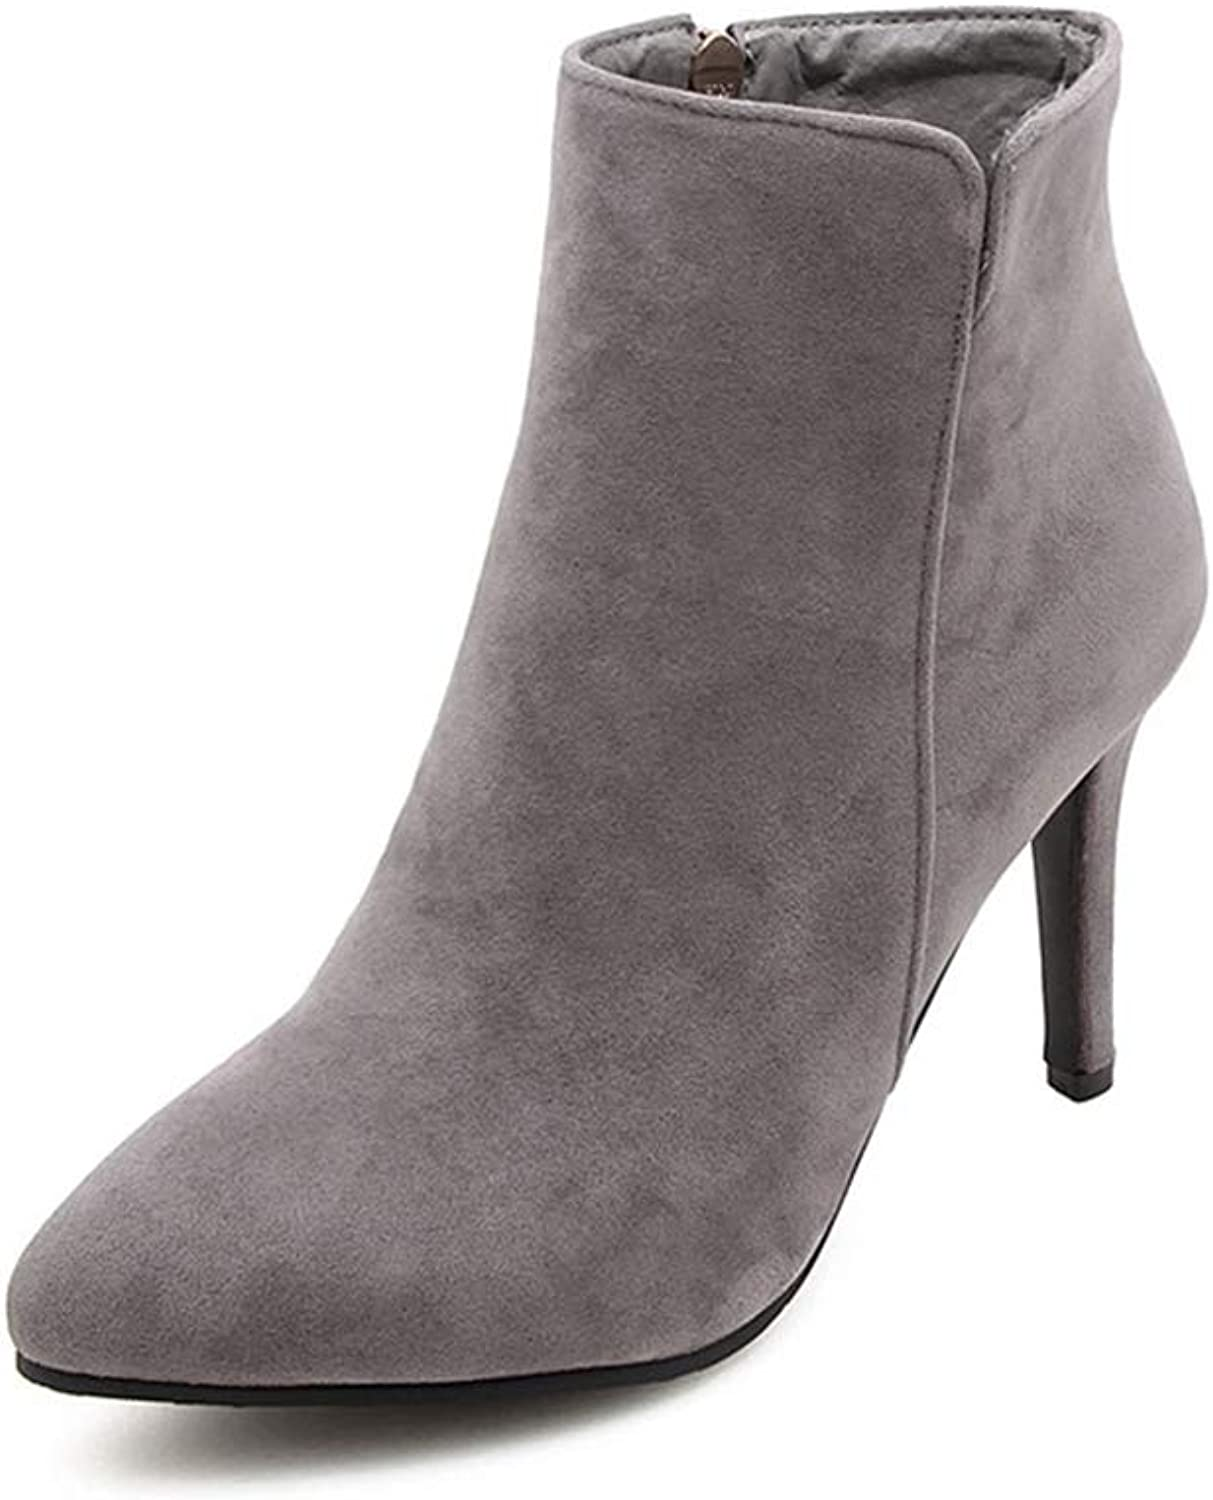 T-JULY Autumn Winter Woman High Heels Suede Ankle Sexy Pointed Toe Metal Martin Plus Size shoes